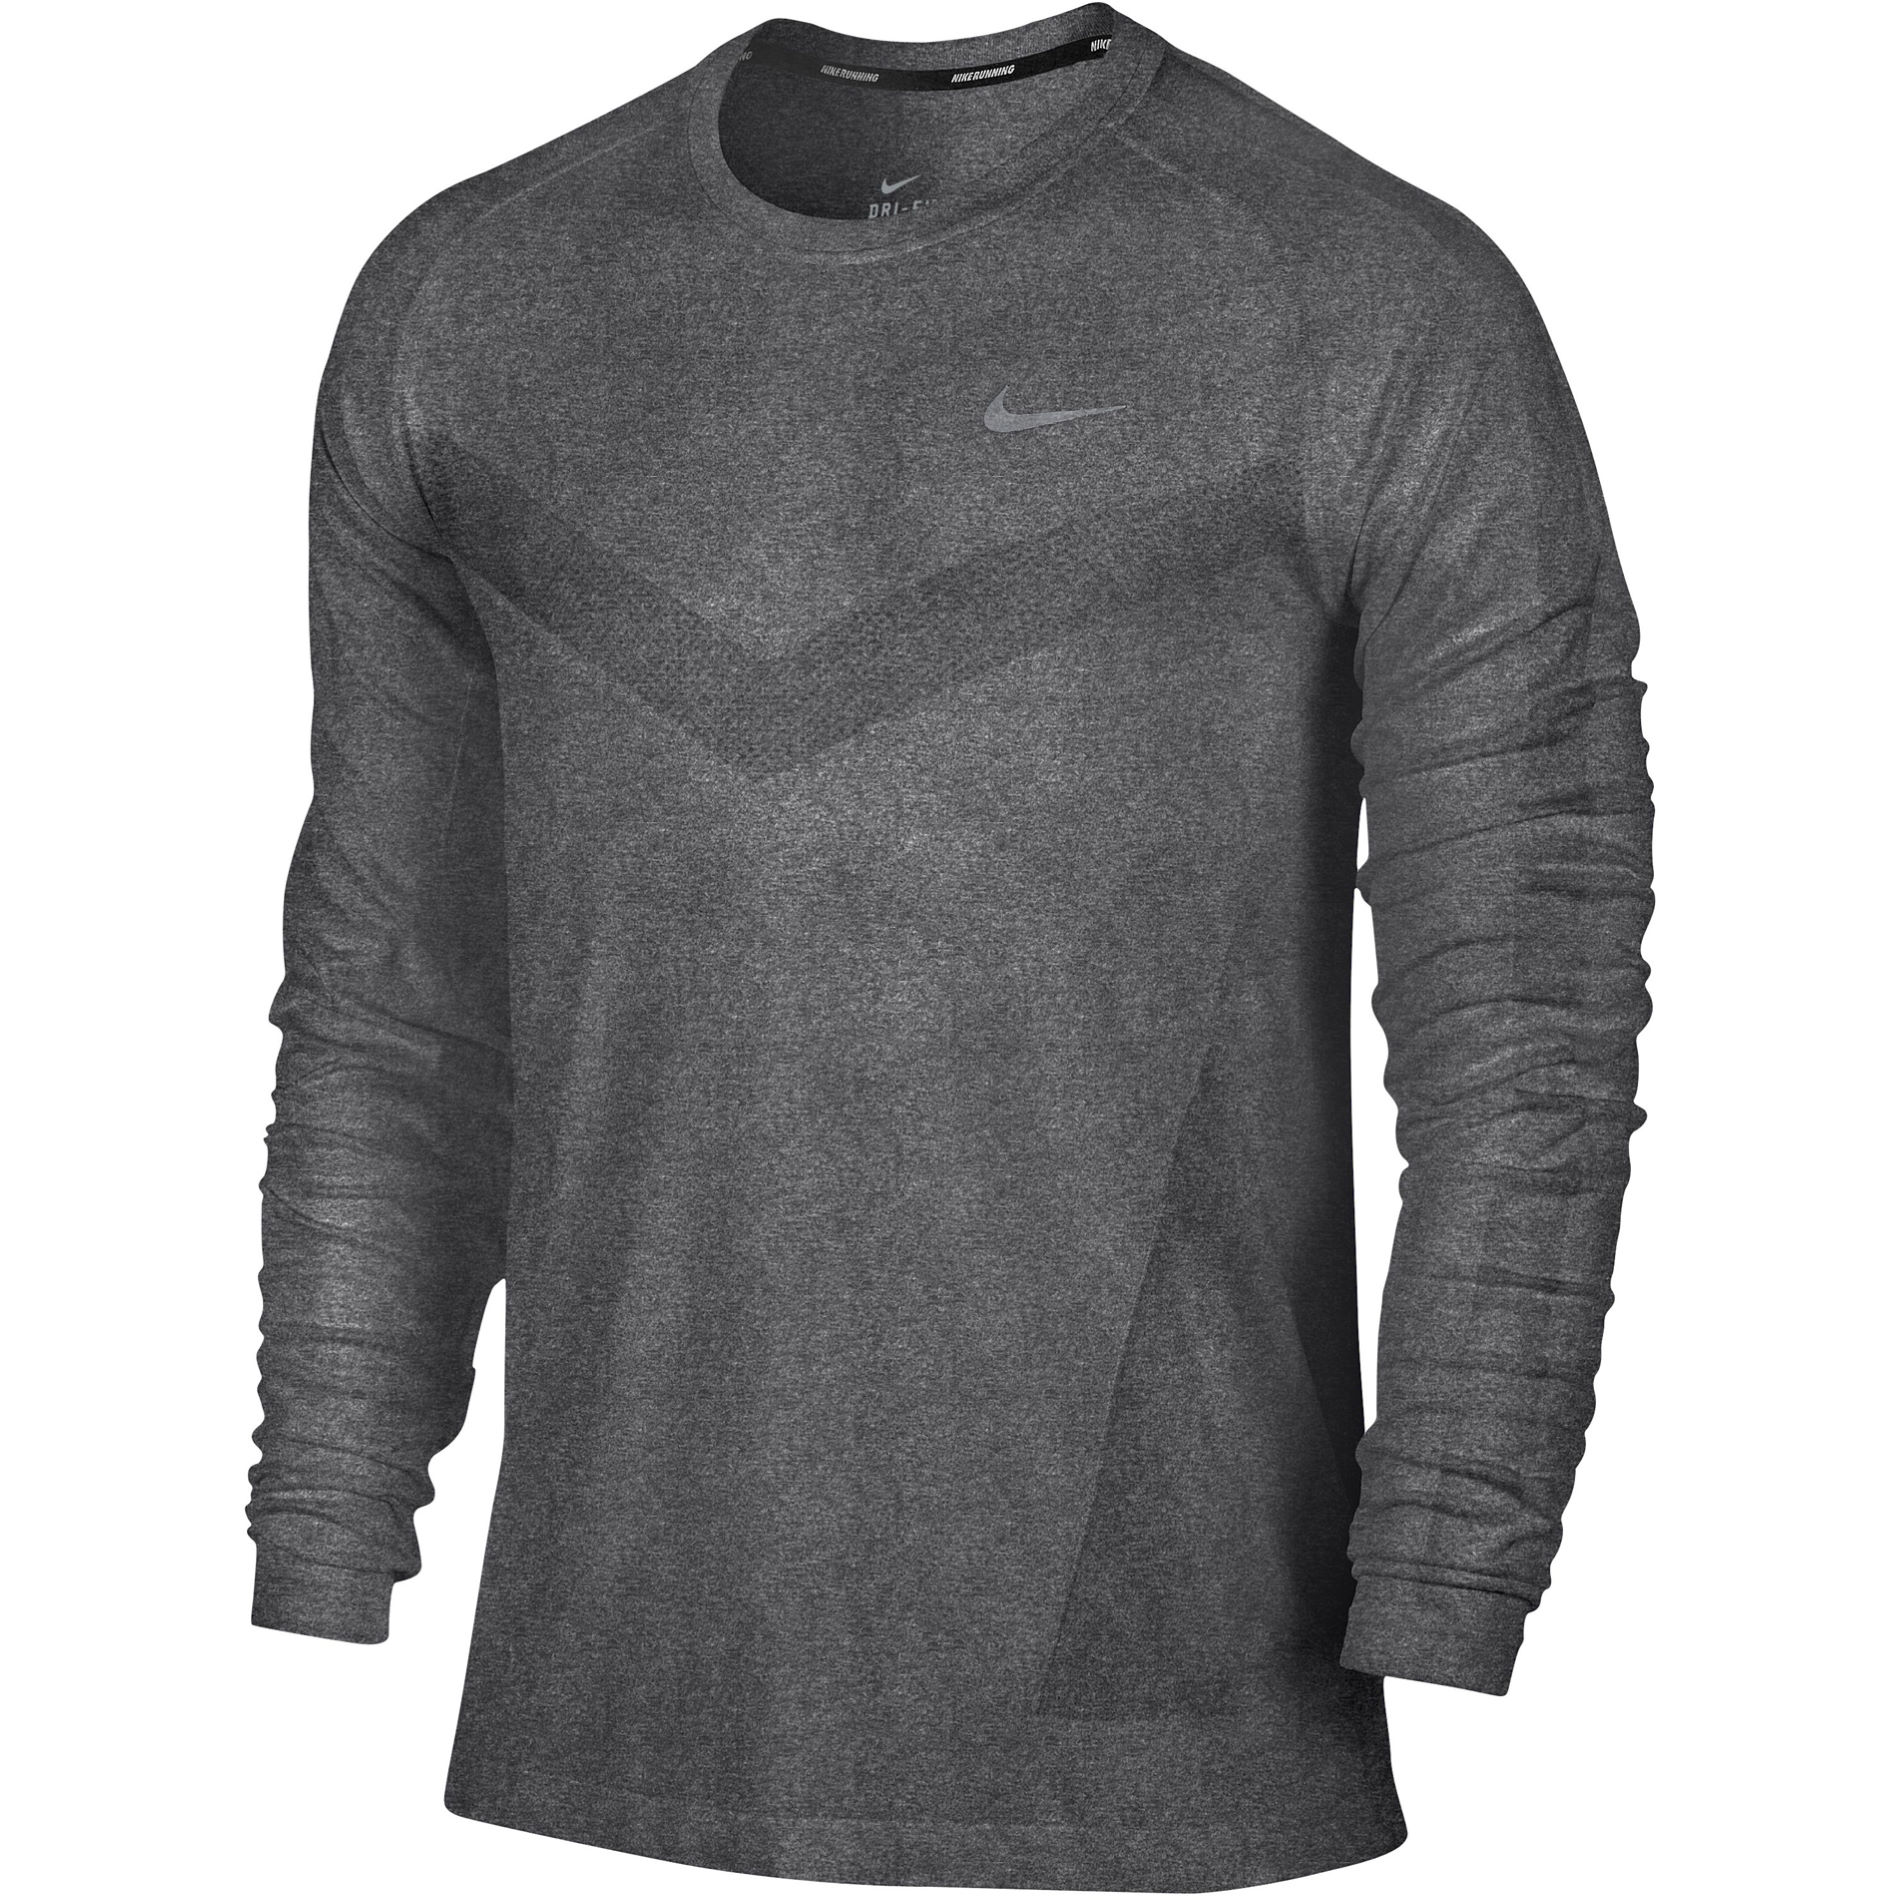 Light shirring at the V-neckline of this three-quarter sleeve tee adds a light drape that's relaxed and pretty. A soft jersey knit is super comfy and falls perfectly over the body. Smooth, breathable and easy to care for, this fabric looks good wash after wash.